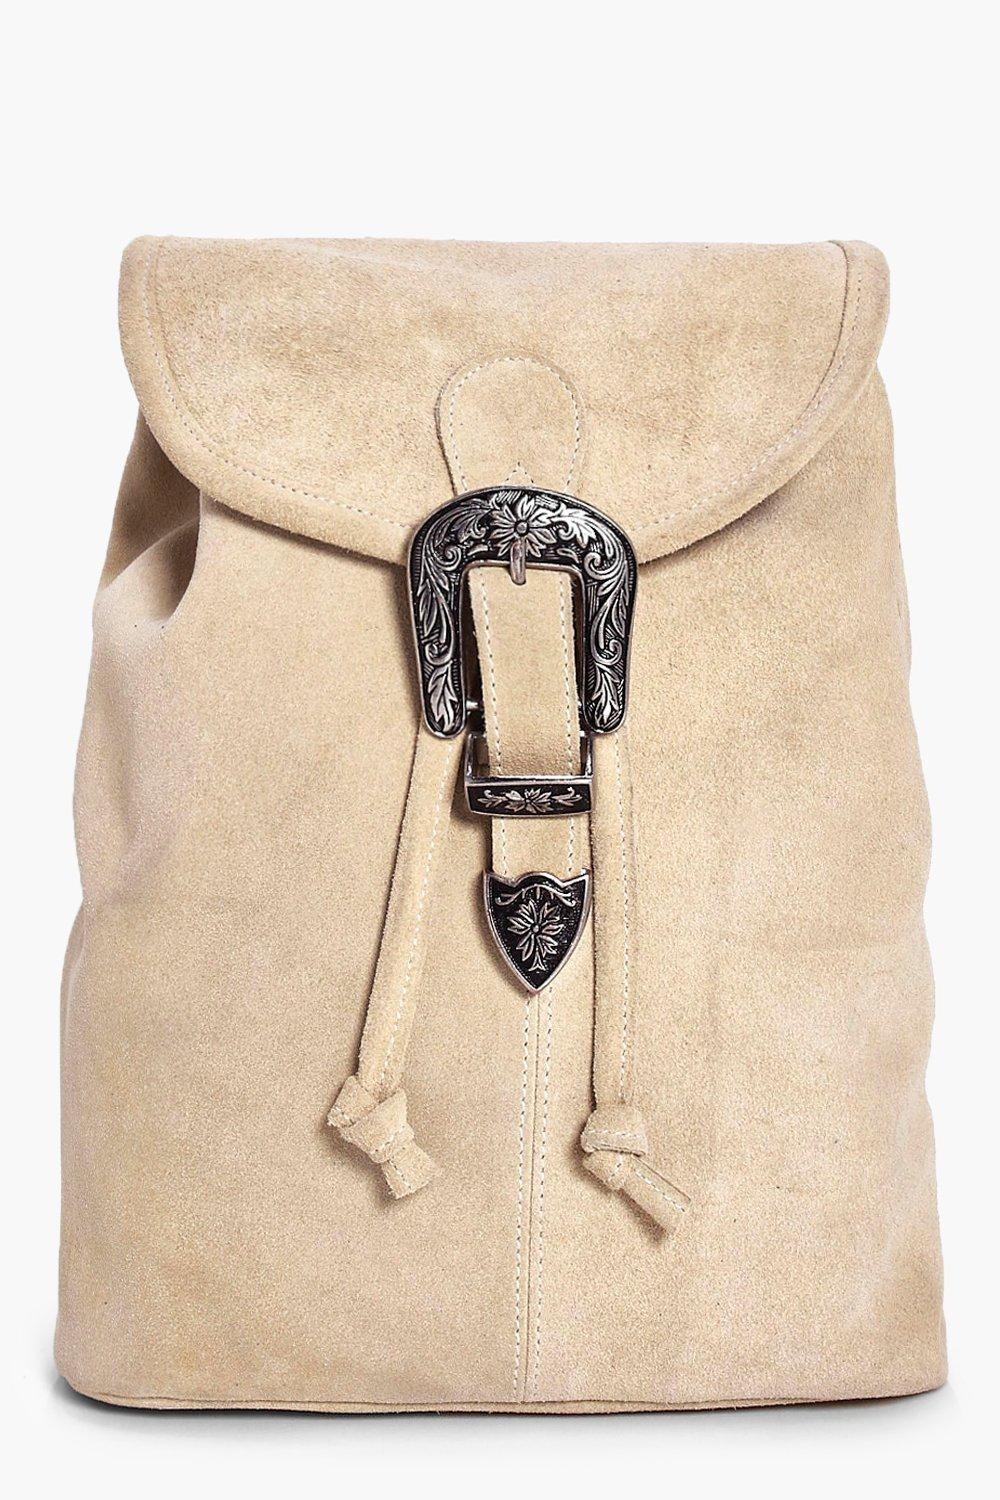 Boutique Suede Buckle Detail Backpack - nude - Pop